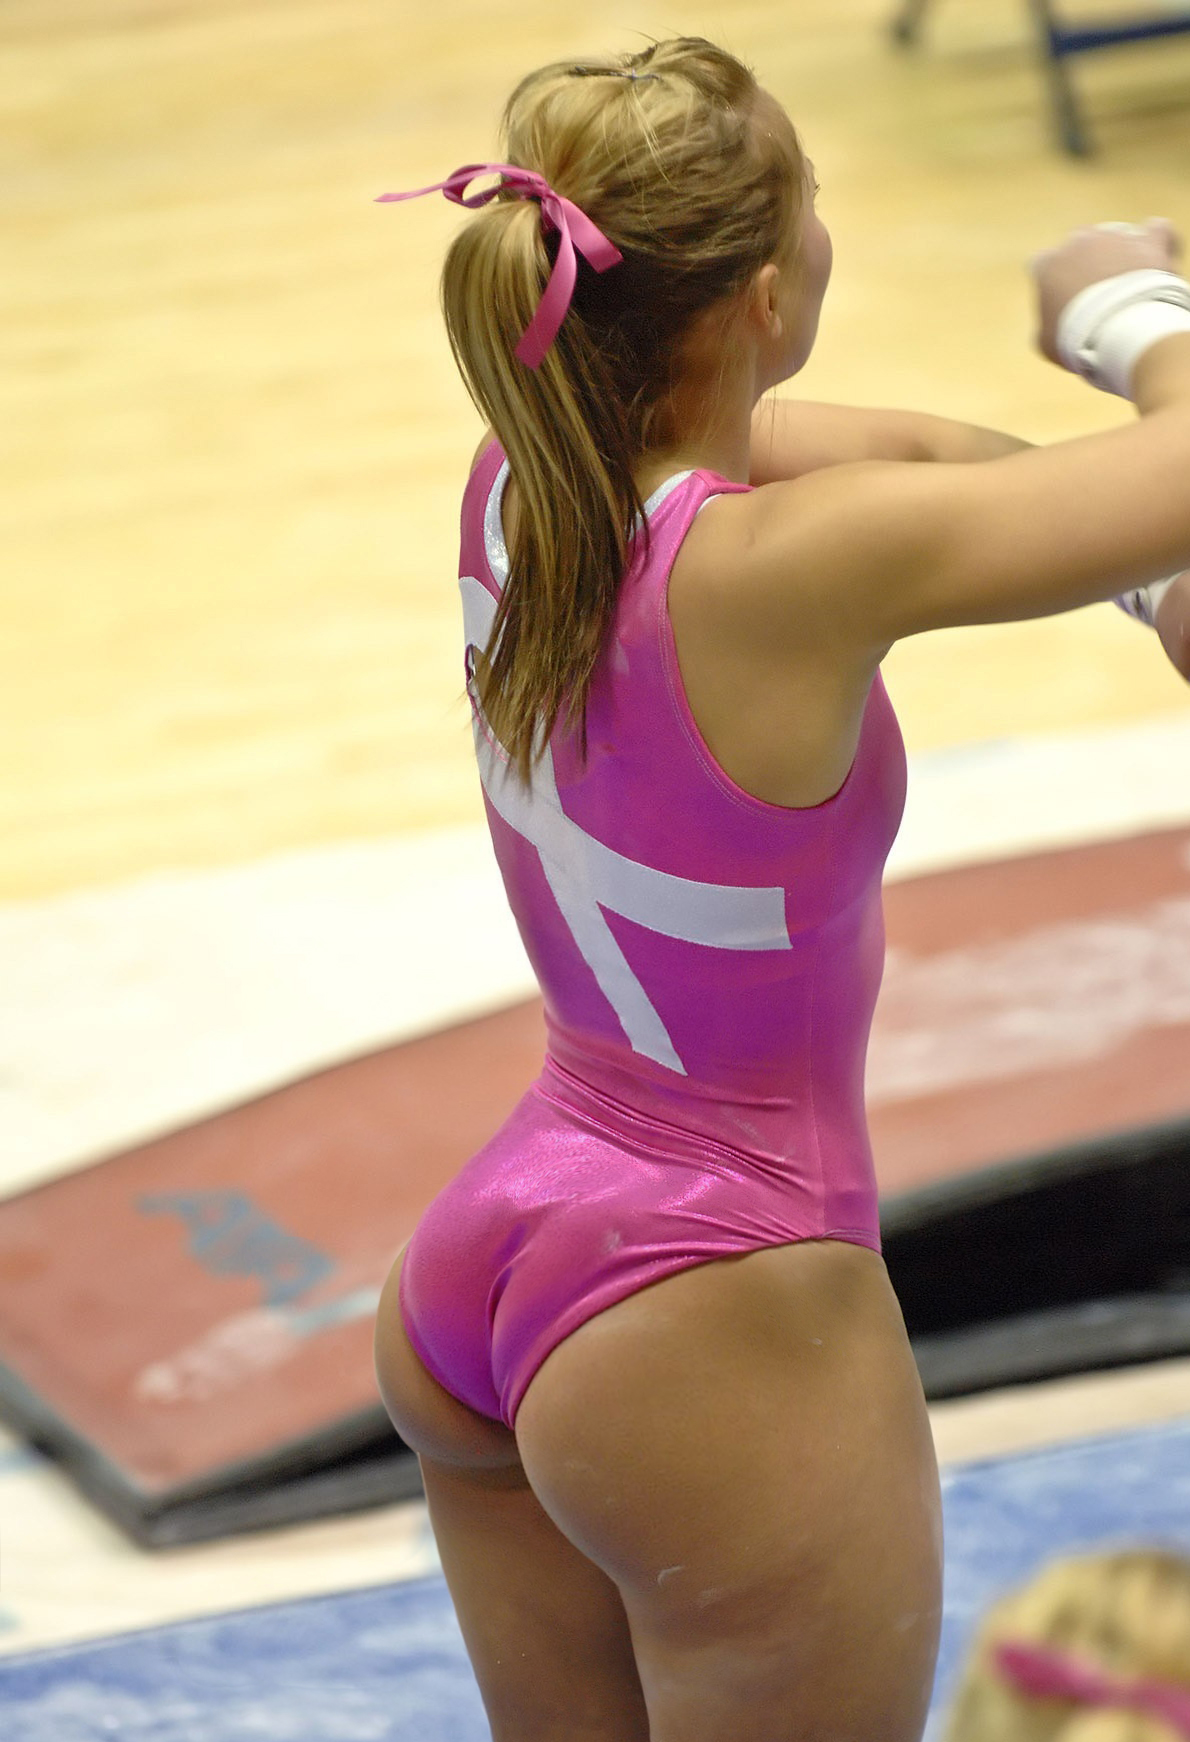 Gymnast booty - Booty of the Day